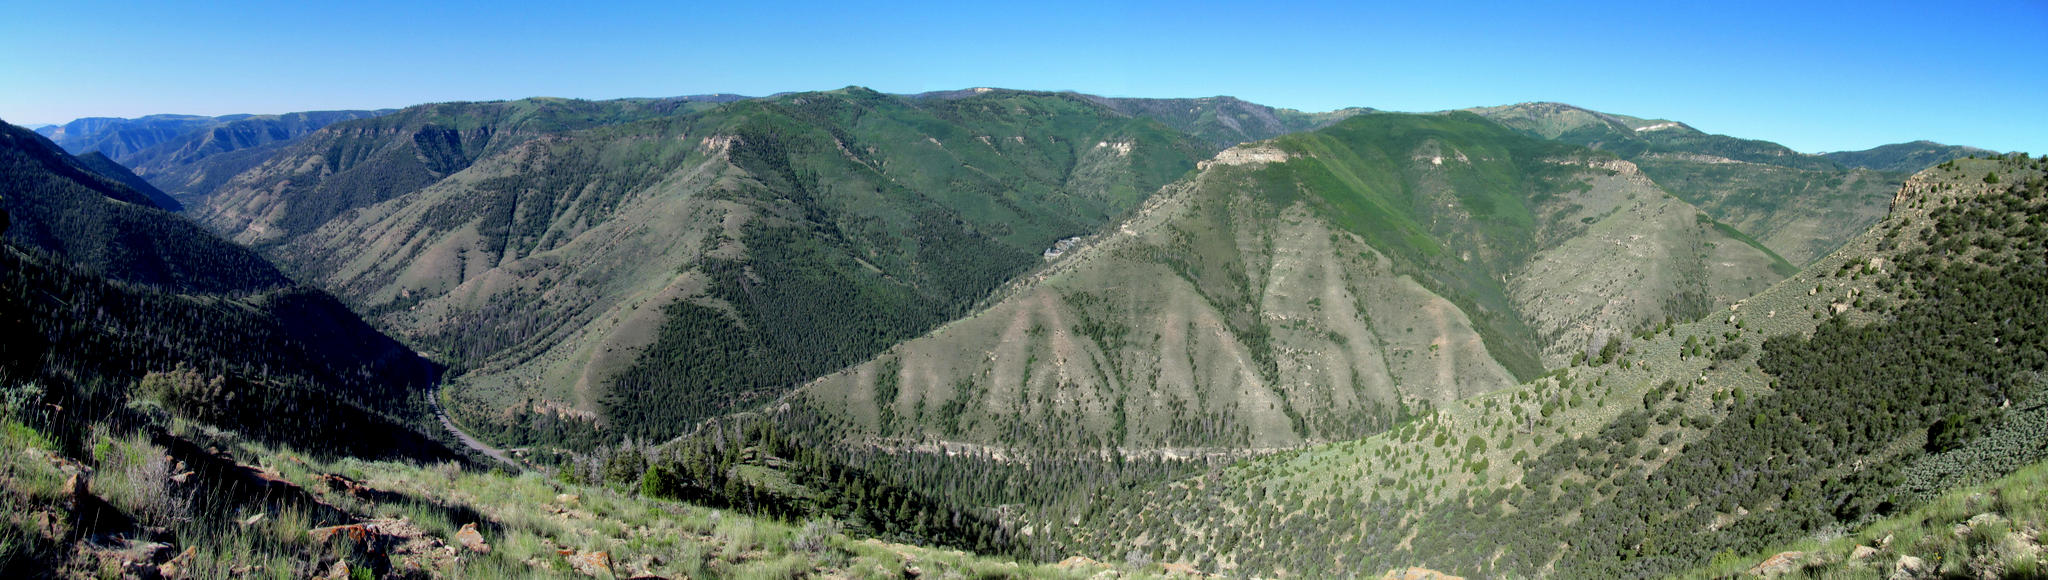 Photo: Panorama showing Huntington Canyon and East Mountain